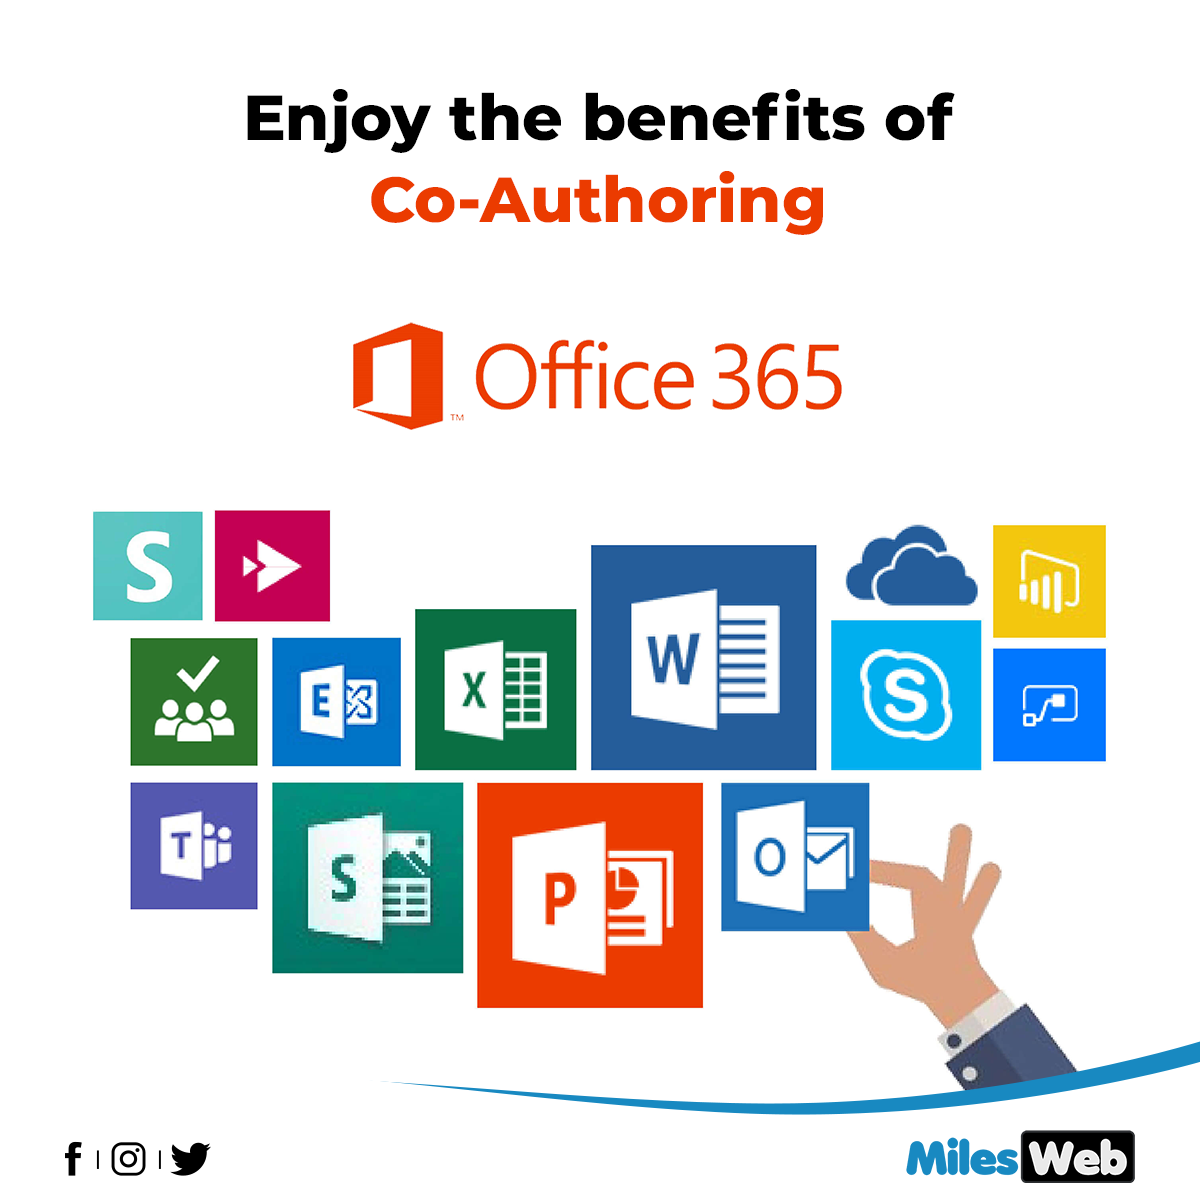 Pin by MilesWeb on General in 2019 Office 365, Microsoft